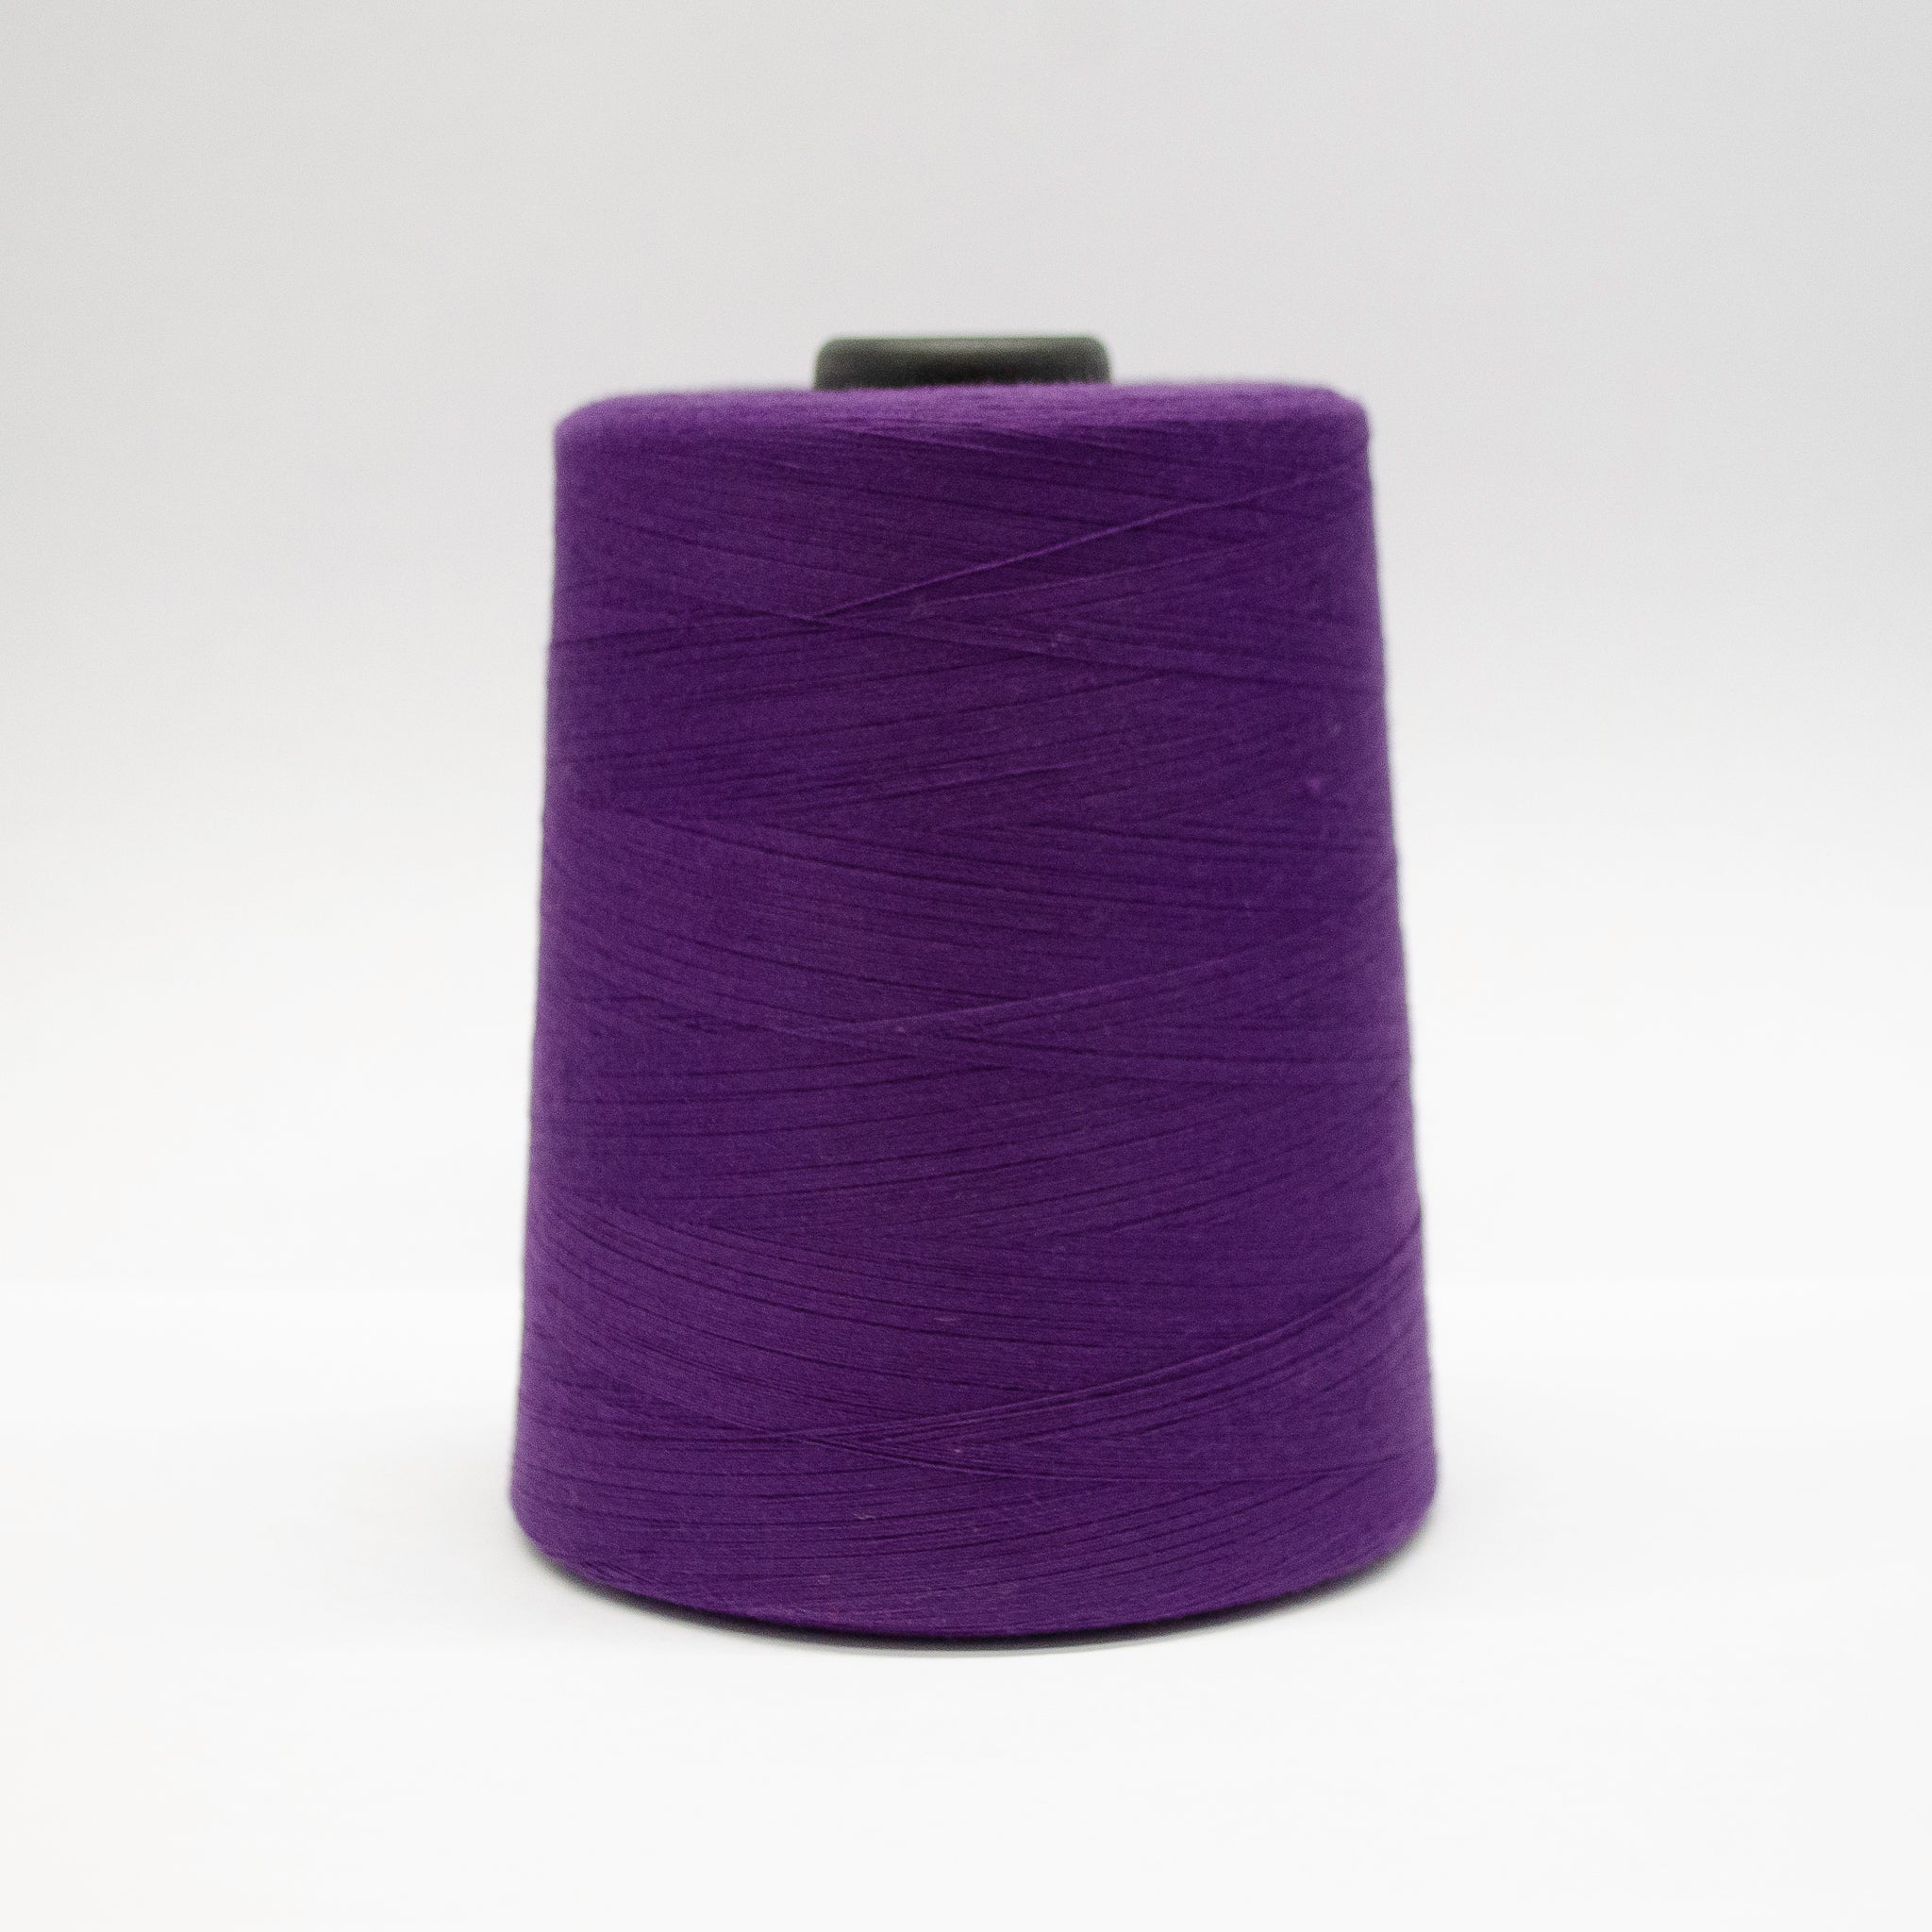 100% Polyester Tex 27 Sewing Thread 10,000 Yards - Purple #6166